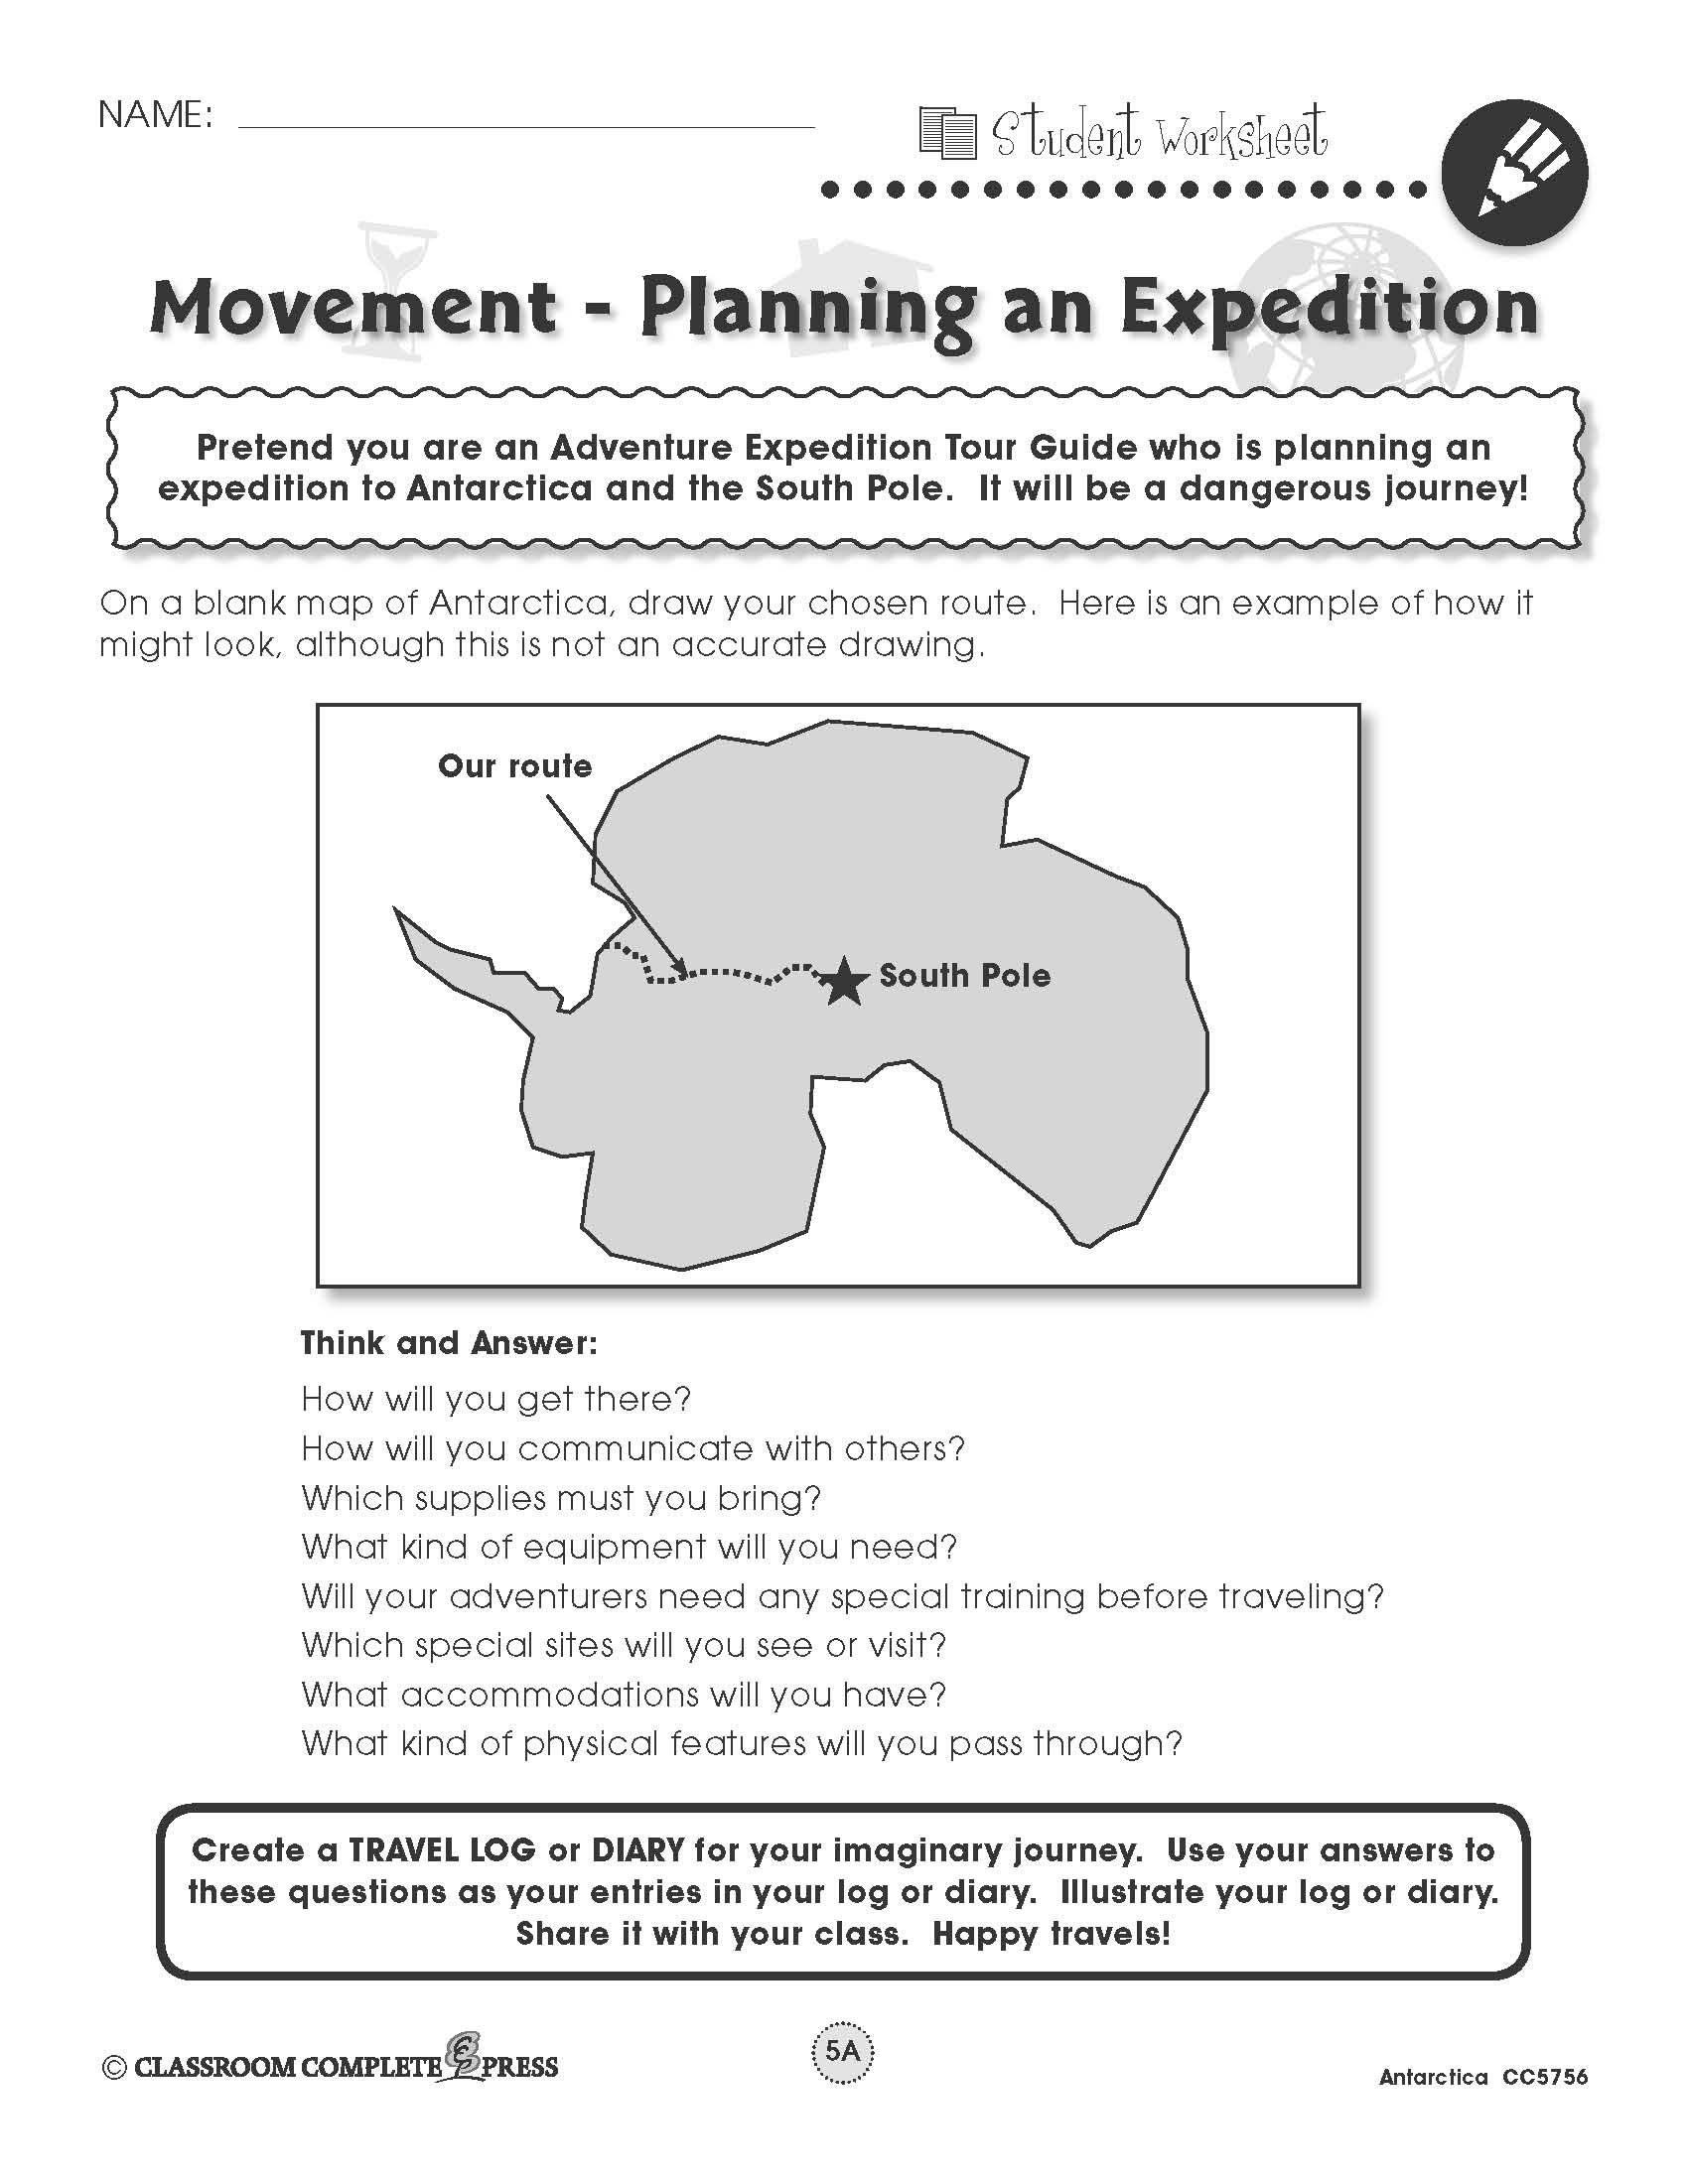 Plan An Expedition To Antarctica With This Free Activity From Ccp Interactive A Division Of Classroom Complete World Geography Geography Homeschool Geography